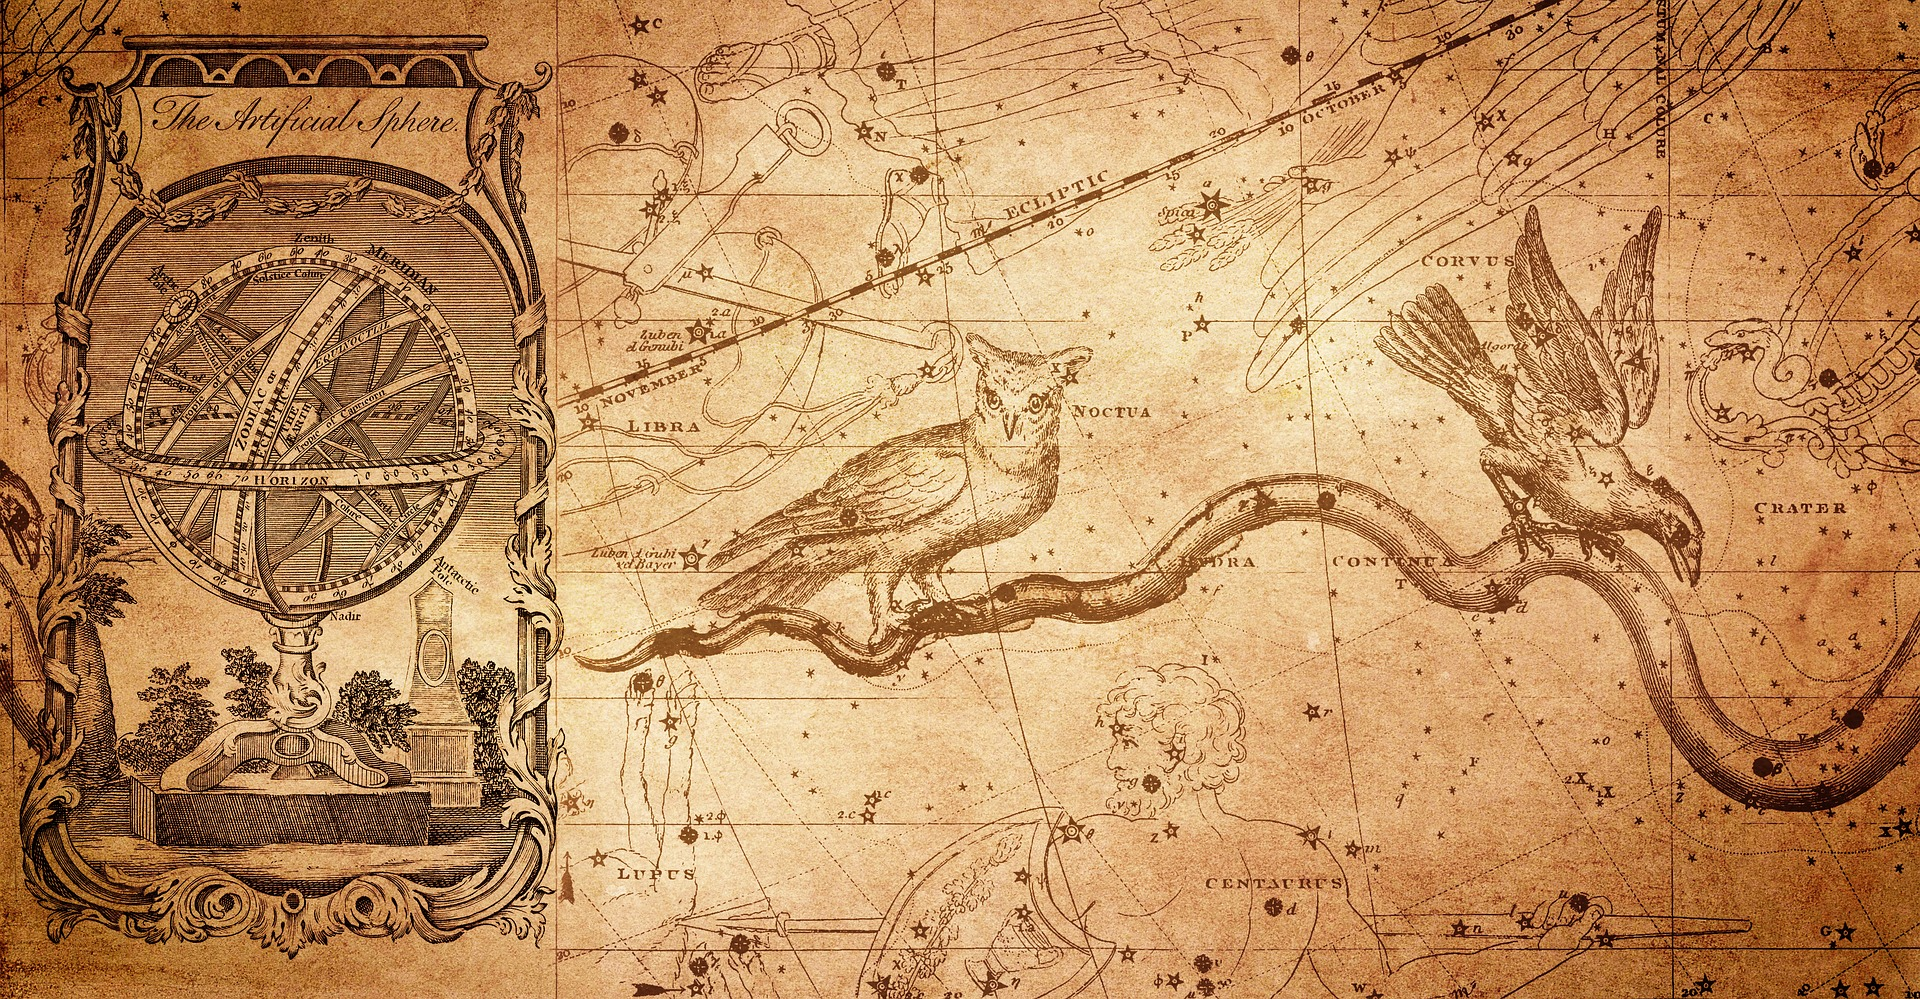 The sphere of the earth and the zodiac are illustrated here in a drawing that appears quite antique